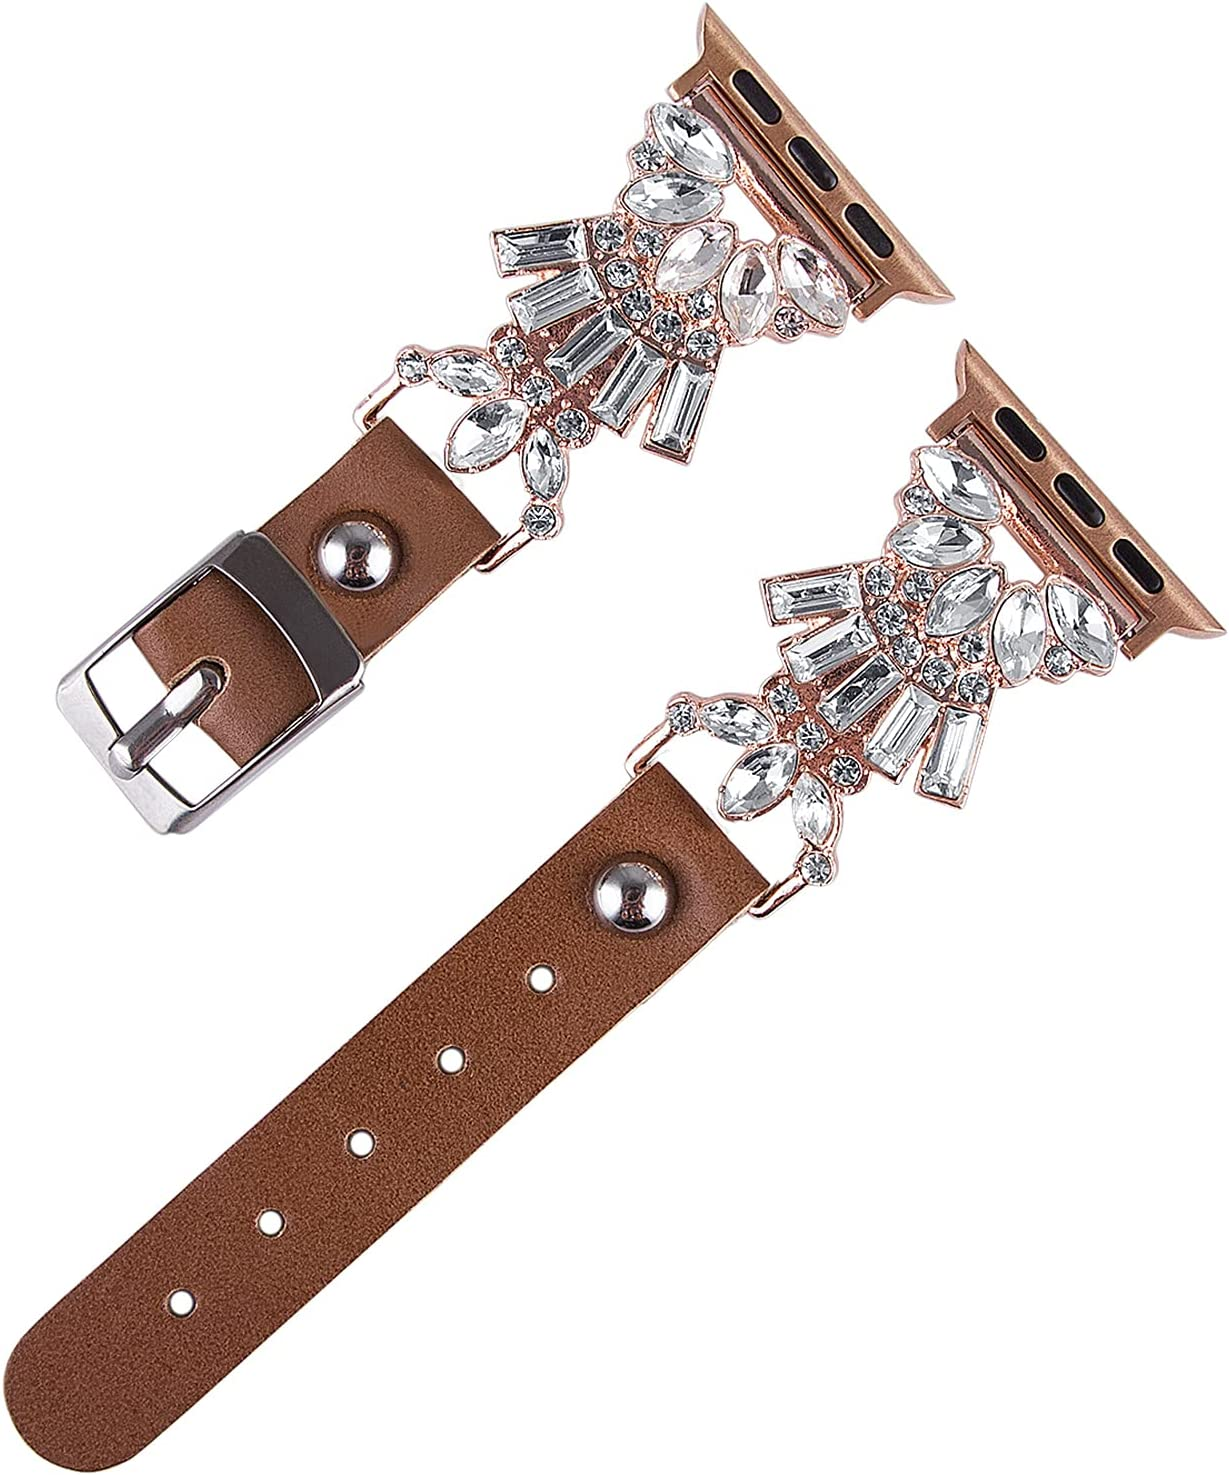 Vikoros Jewelry Band Compatible with Apple Watch Bands' 38mm 40mm 42mm 44mm iWatch Series 6/5/4/3/2/1 SE Women Girls, Leather Bling Bracelets Crystal Diamonds Dressy Metal Wristband Strap Accessories